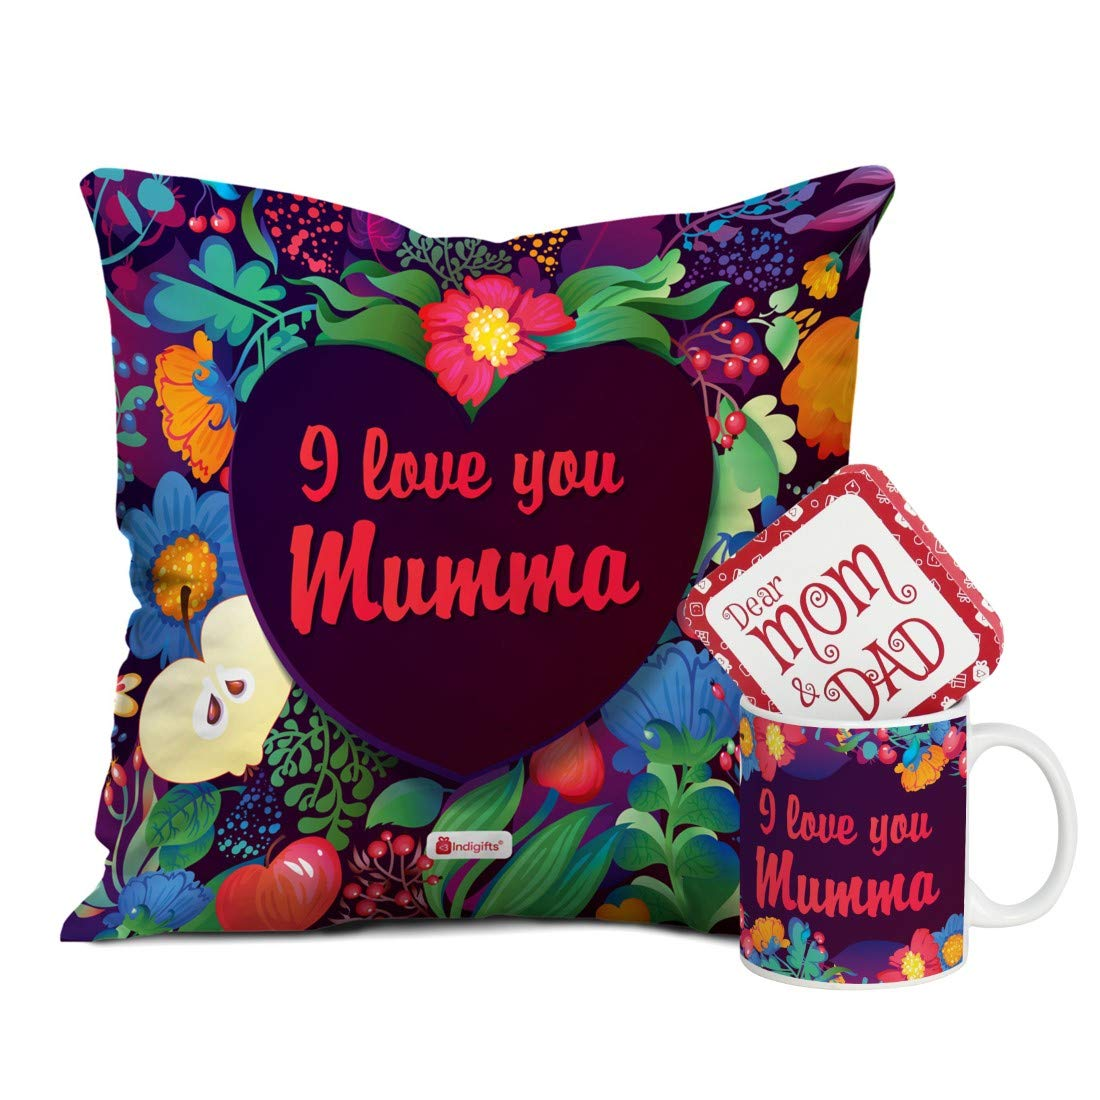 Indi ts for Mom Mothers Day Birthday Anniversary Floral I Love You Mumma Violet Printed Small Cushion 12X12 with Filler Ceramic Mug Set of 2